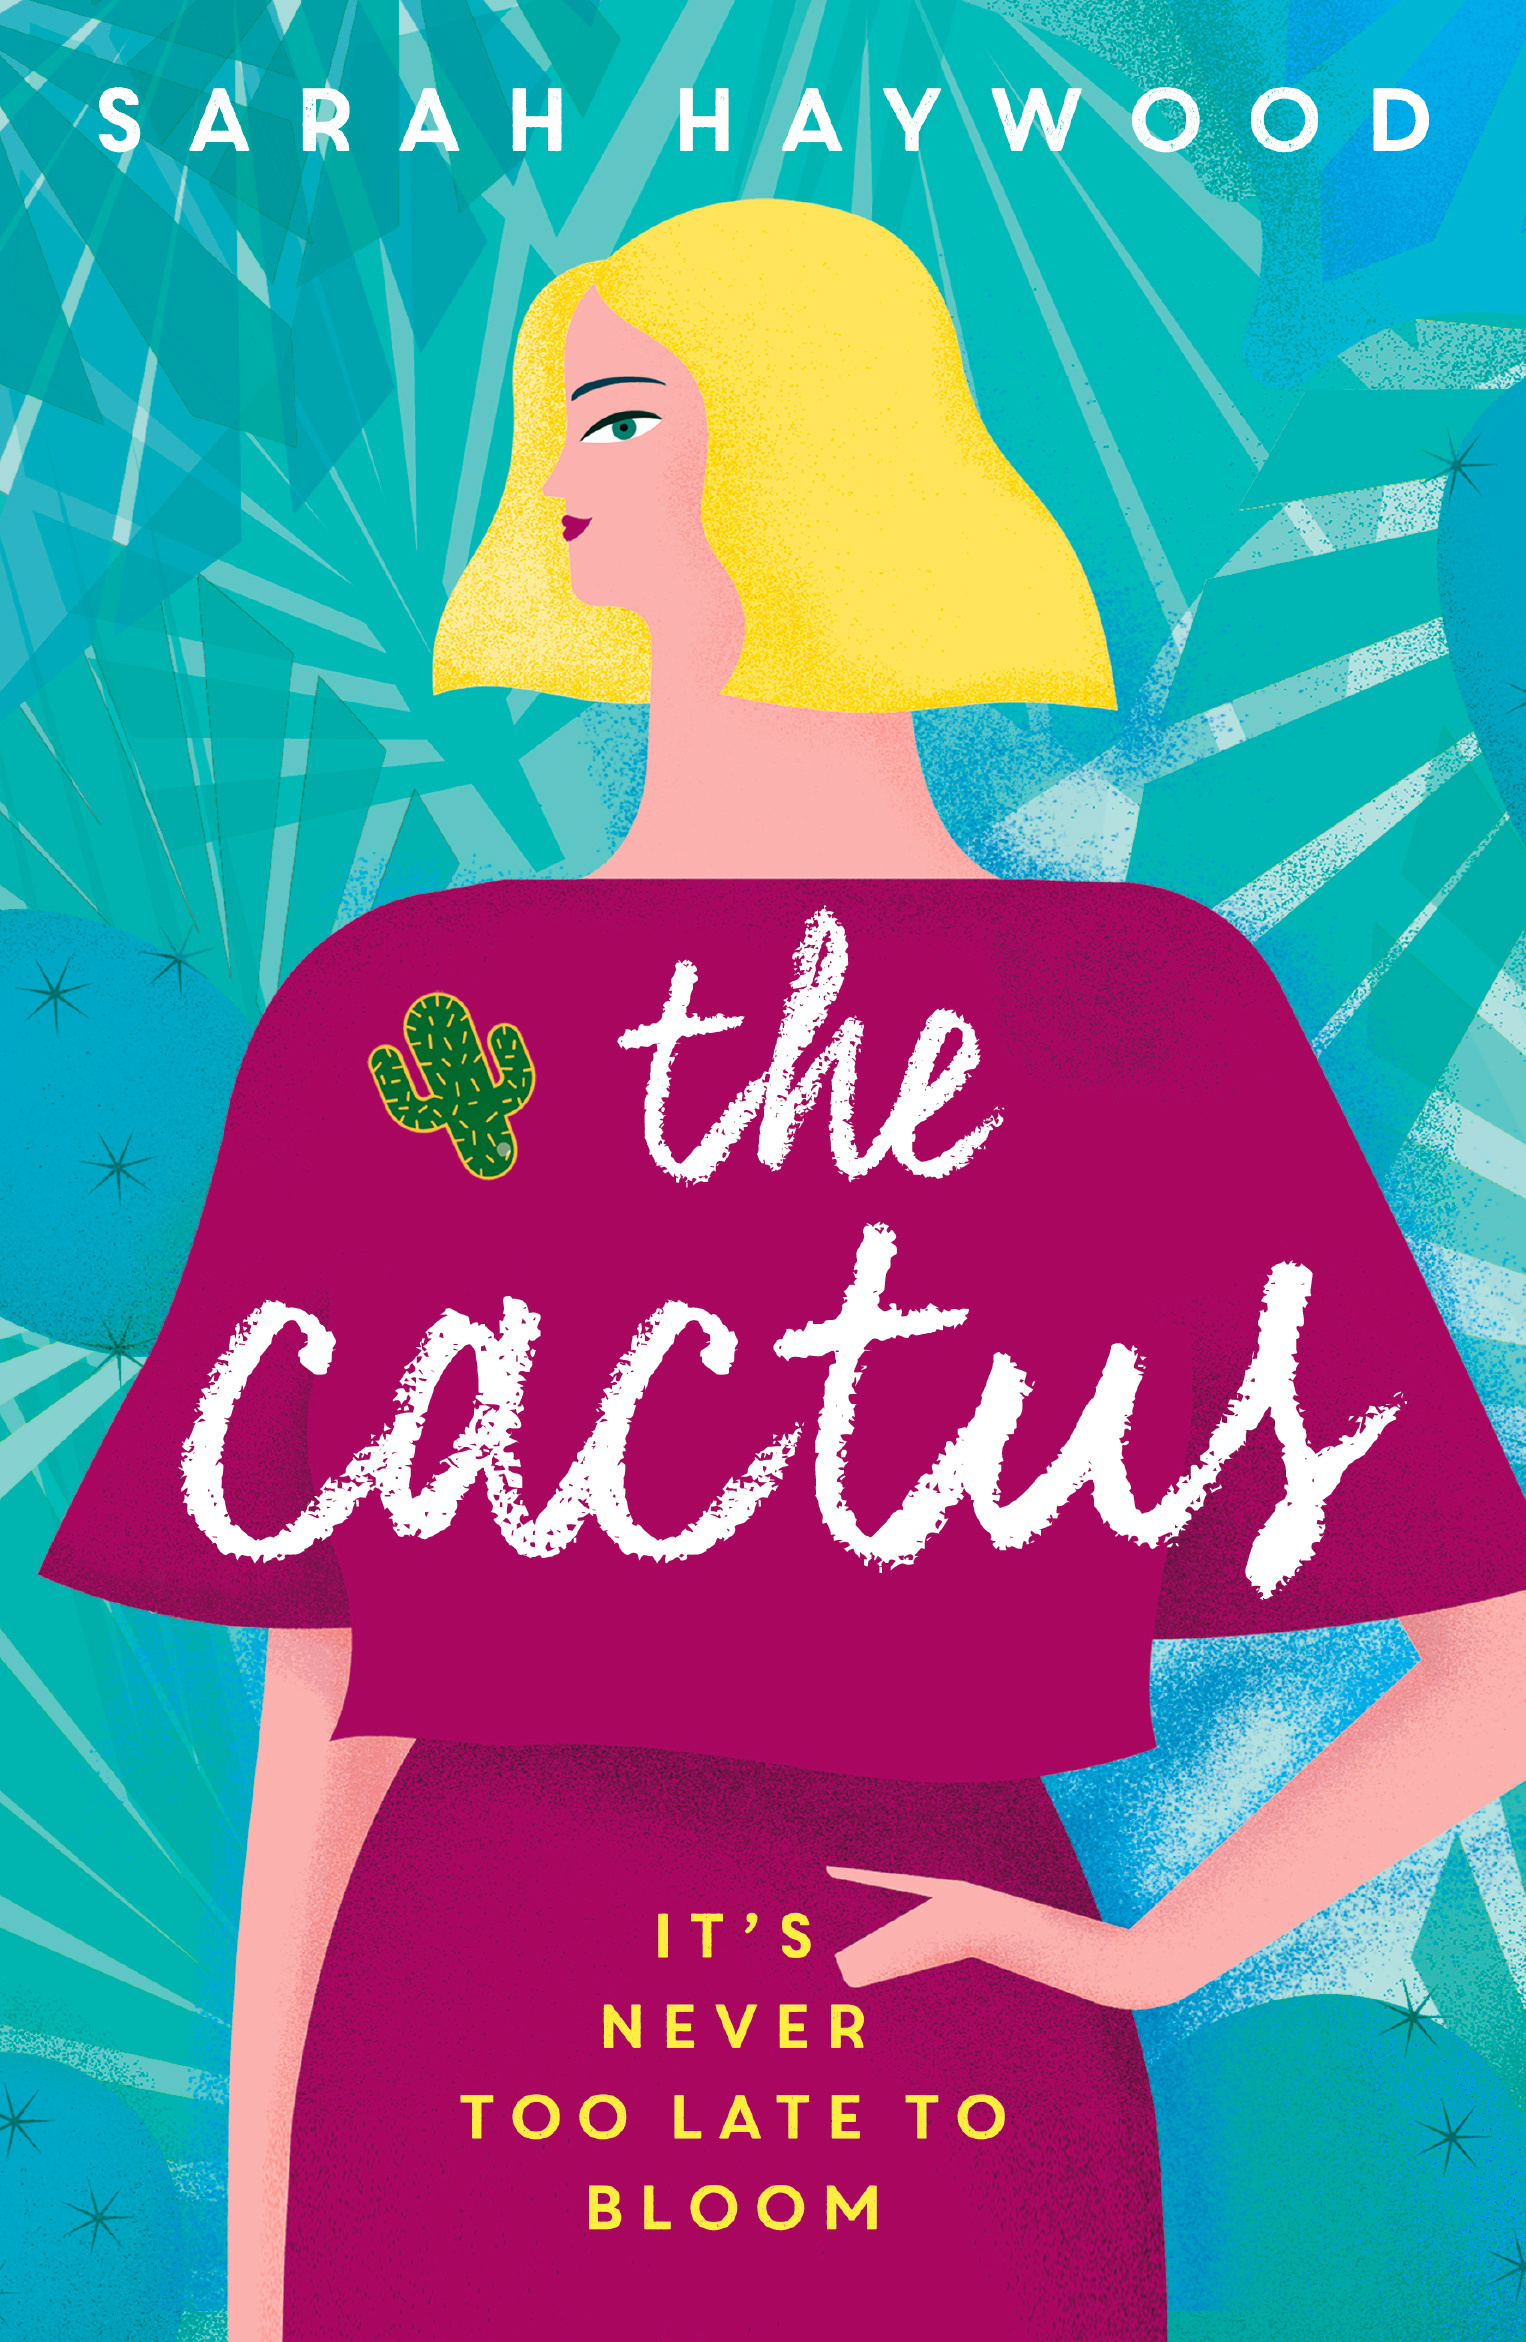 The Cactus: how a prickly heroine learns to bloom